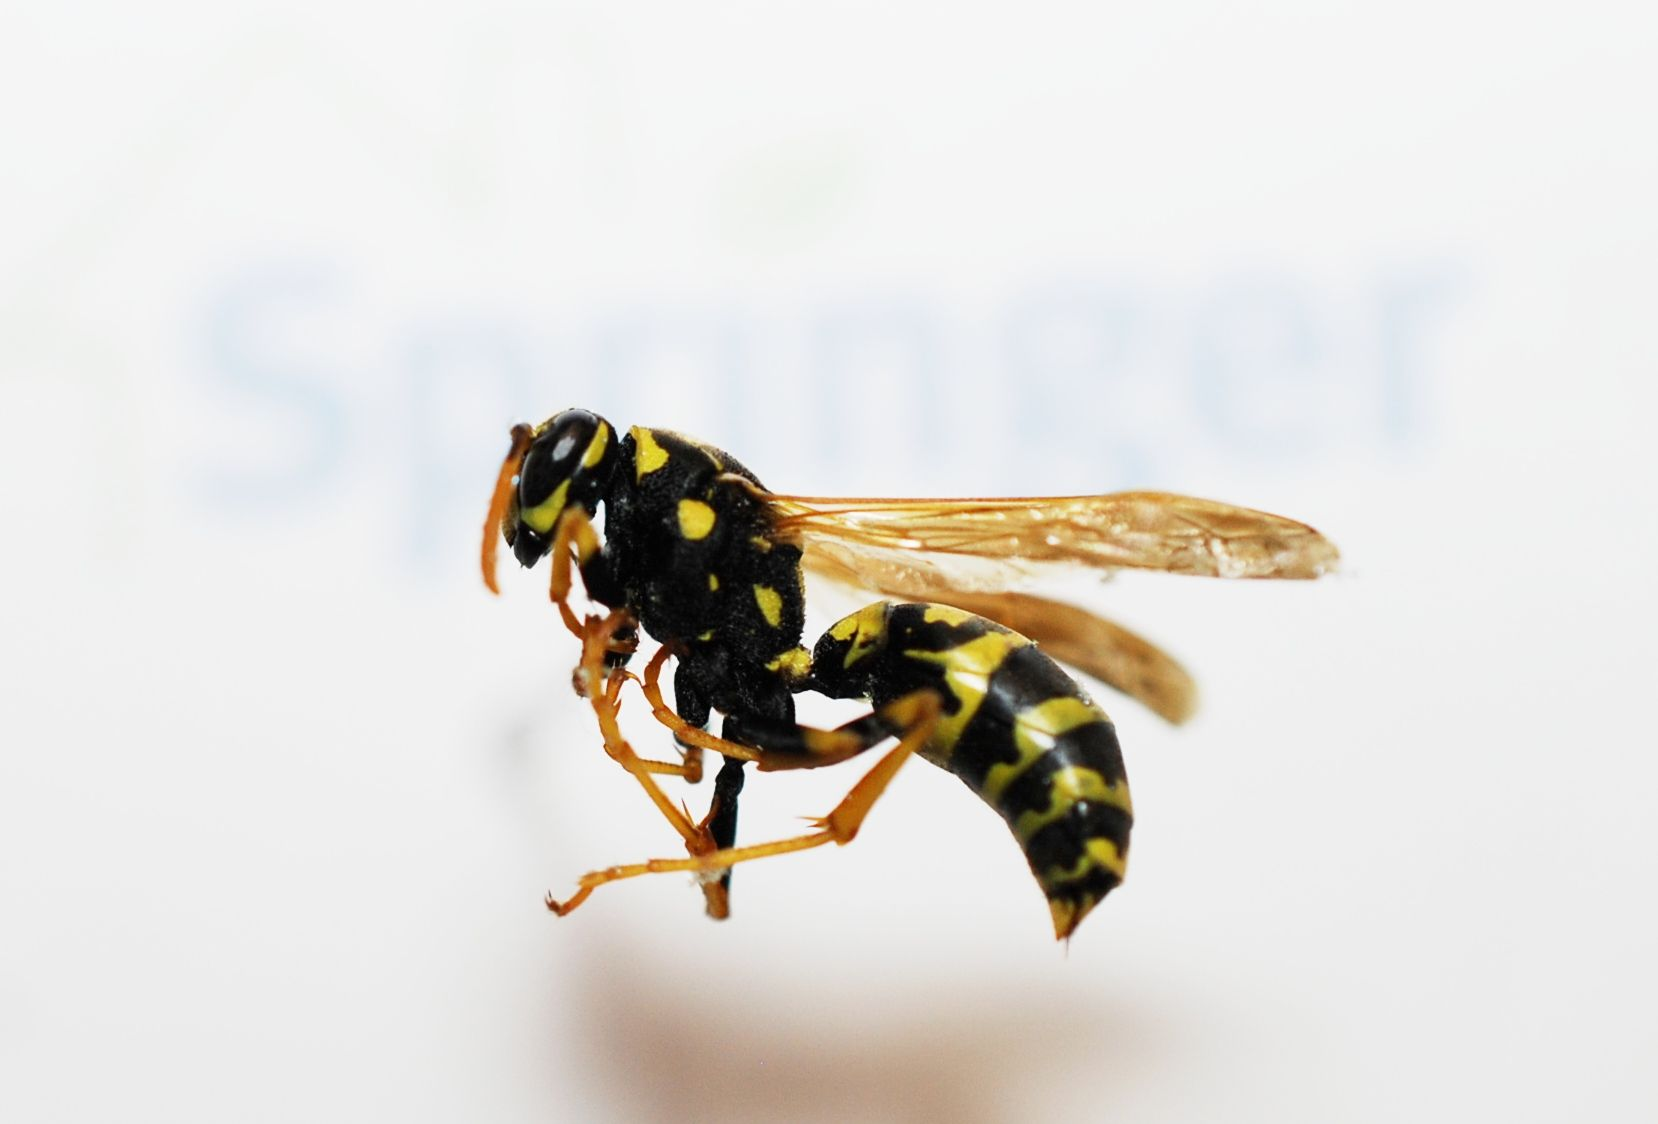 Wasps: types of insects and their features 30